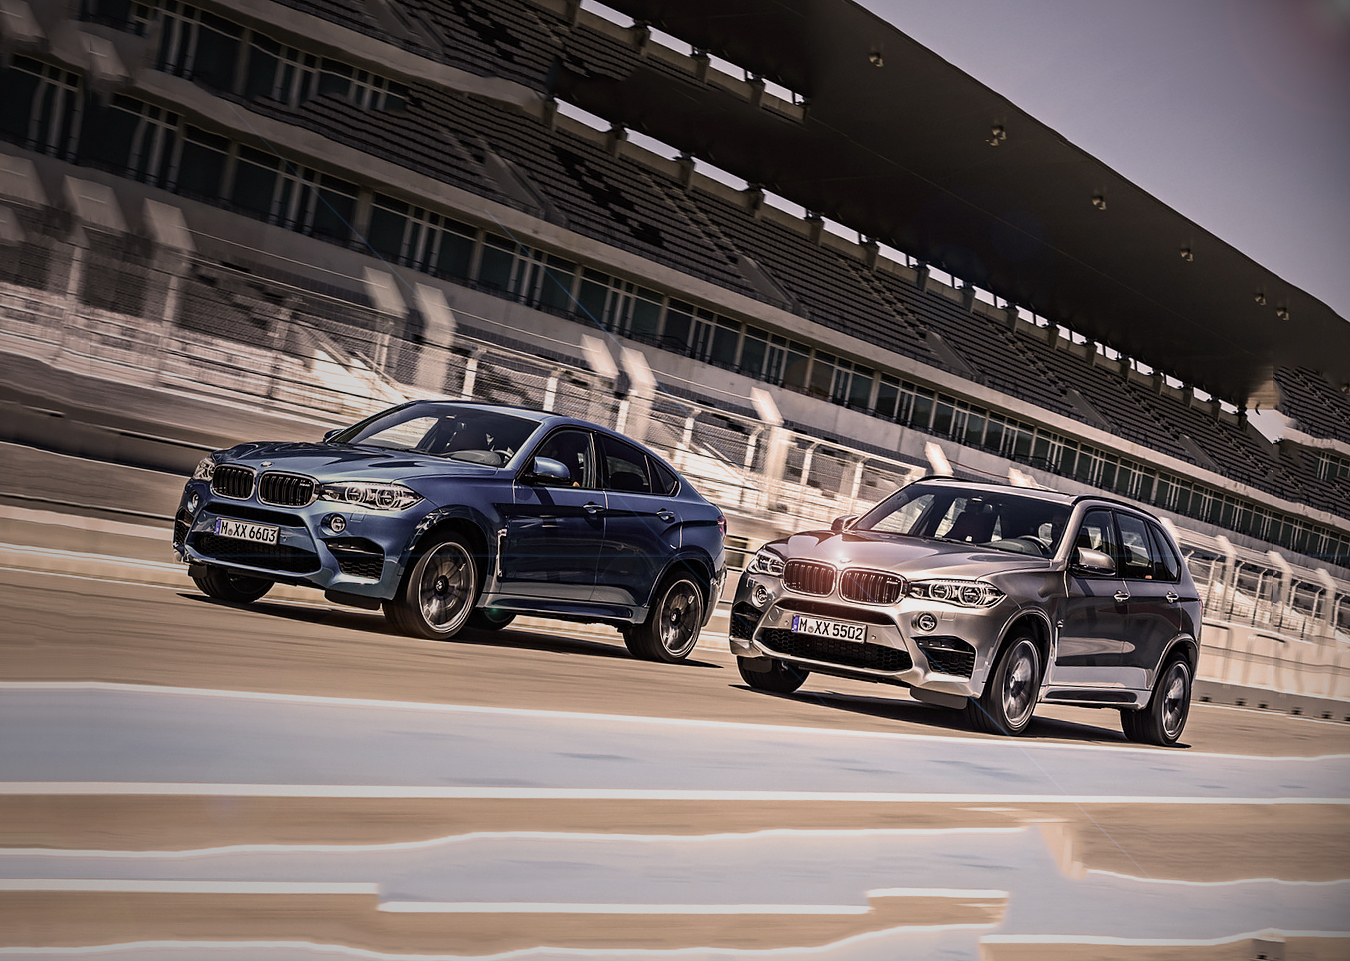 BMW X5 F15 and X6 M F16 models due in 2015